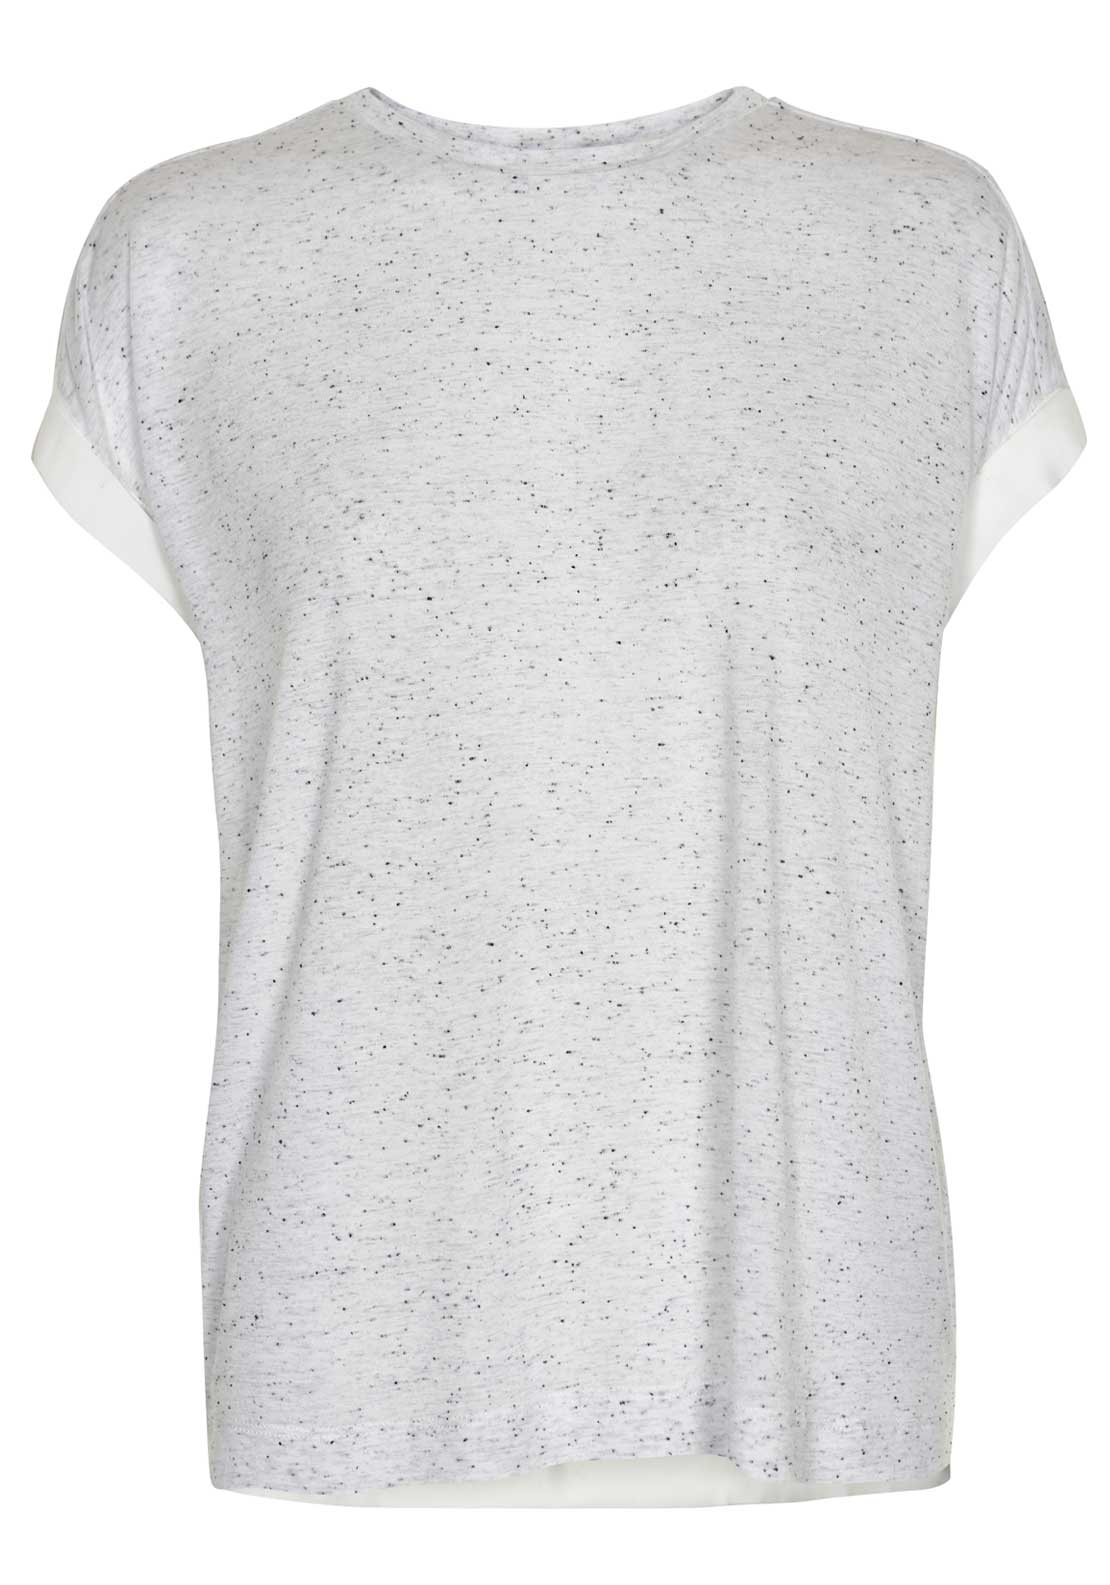 Inwear Noma Speckled Print Cap Sleeve Top, Off White